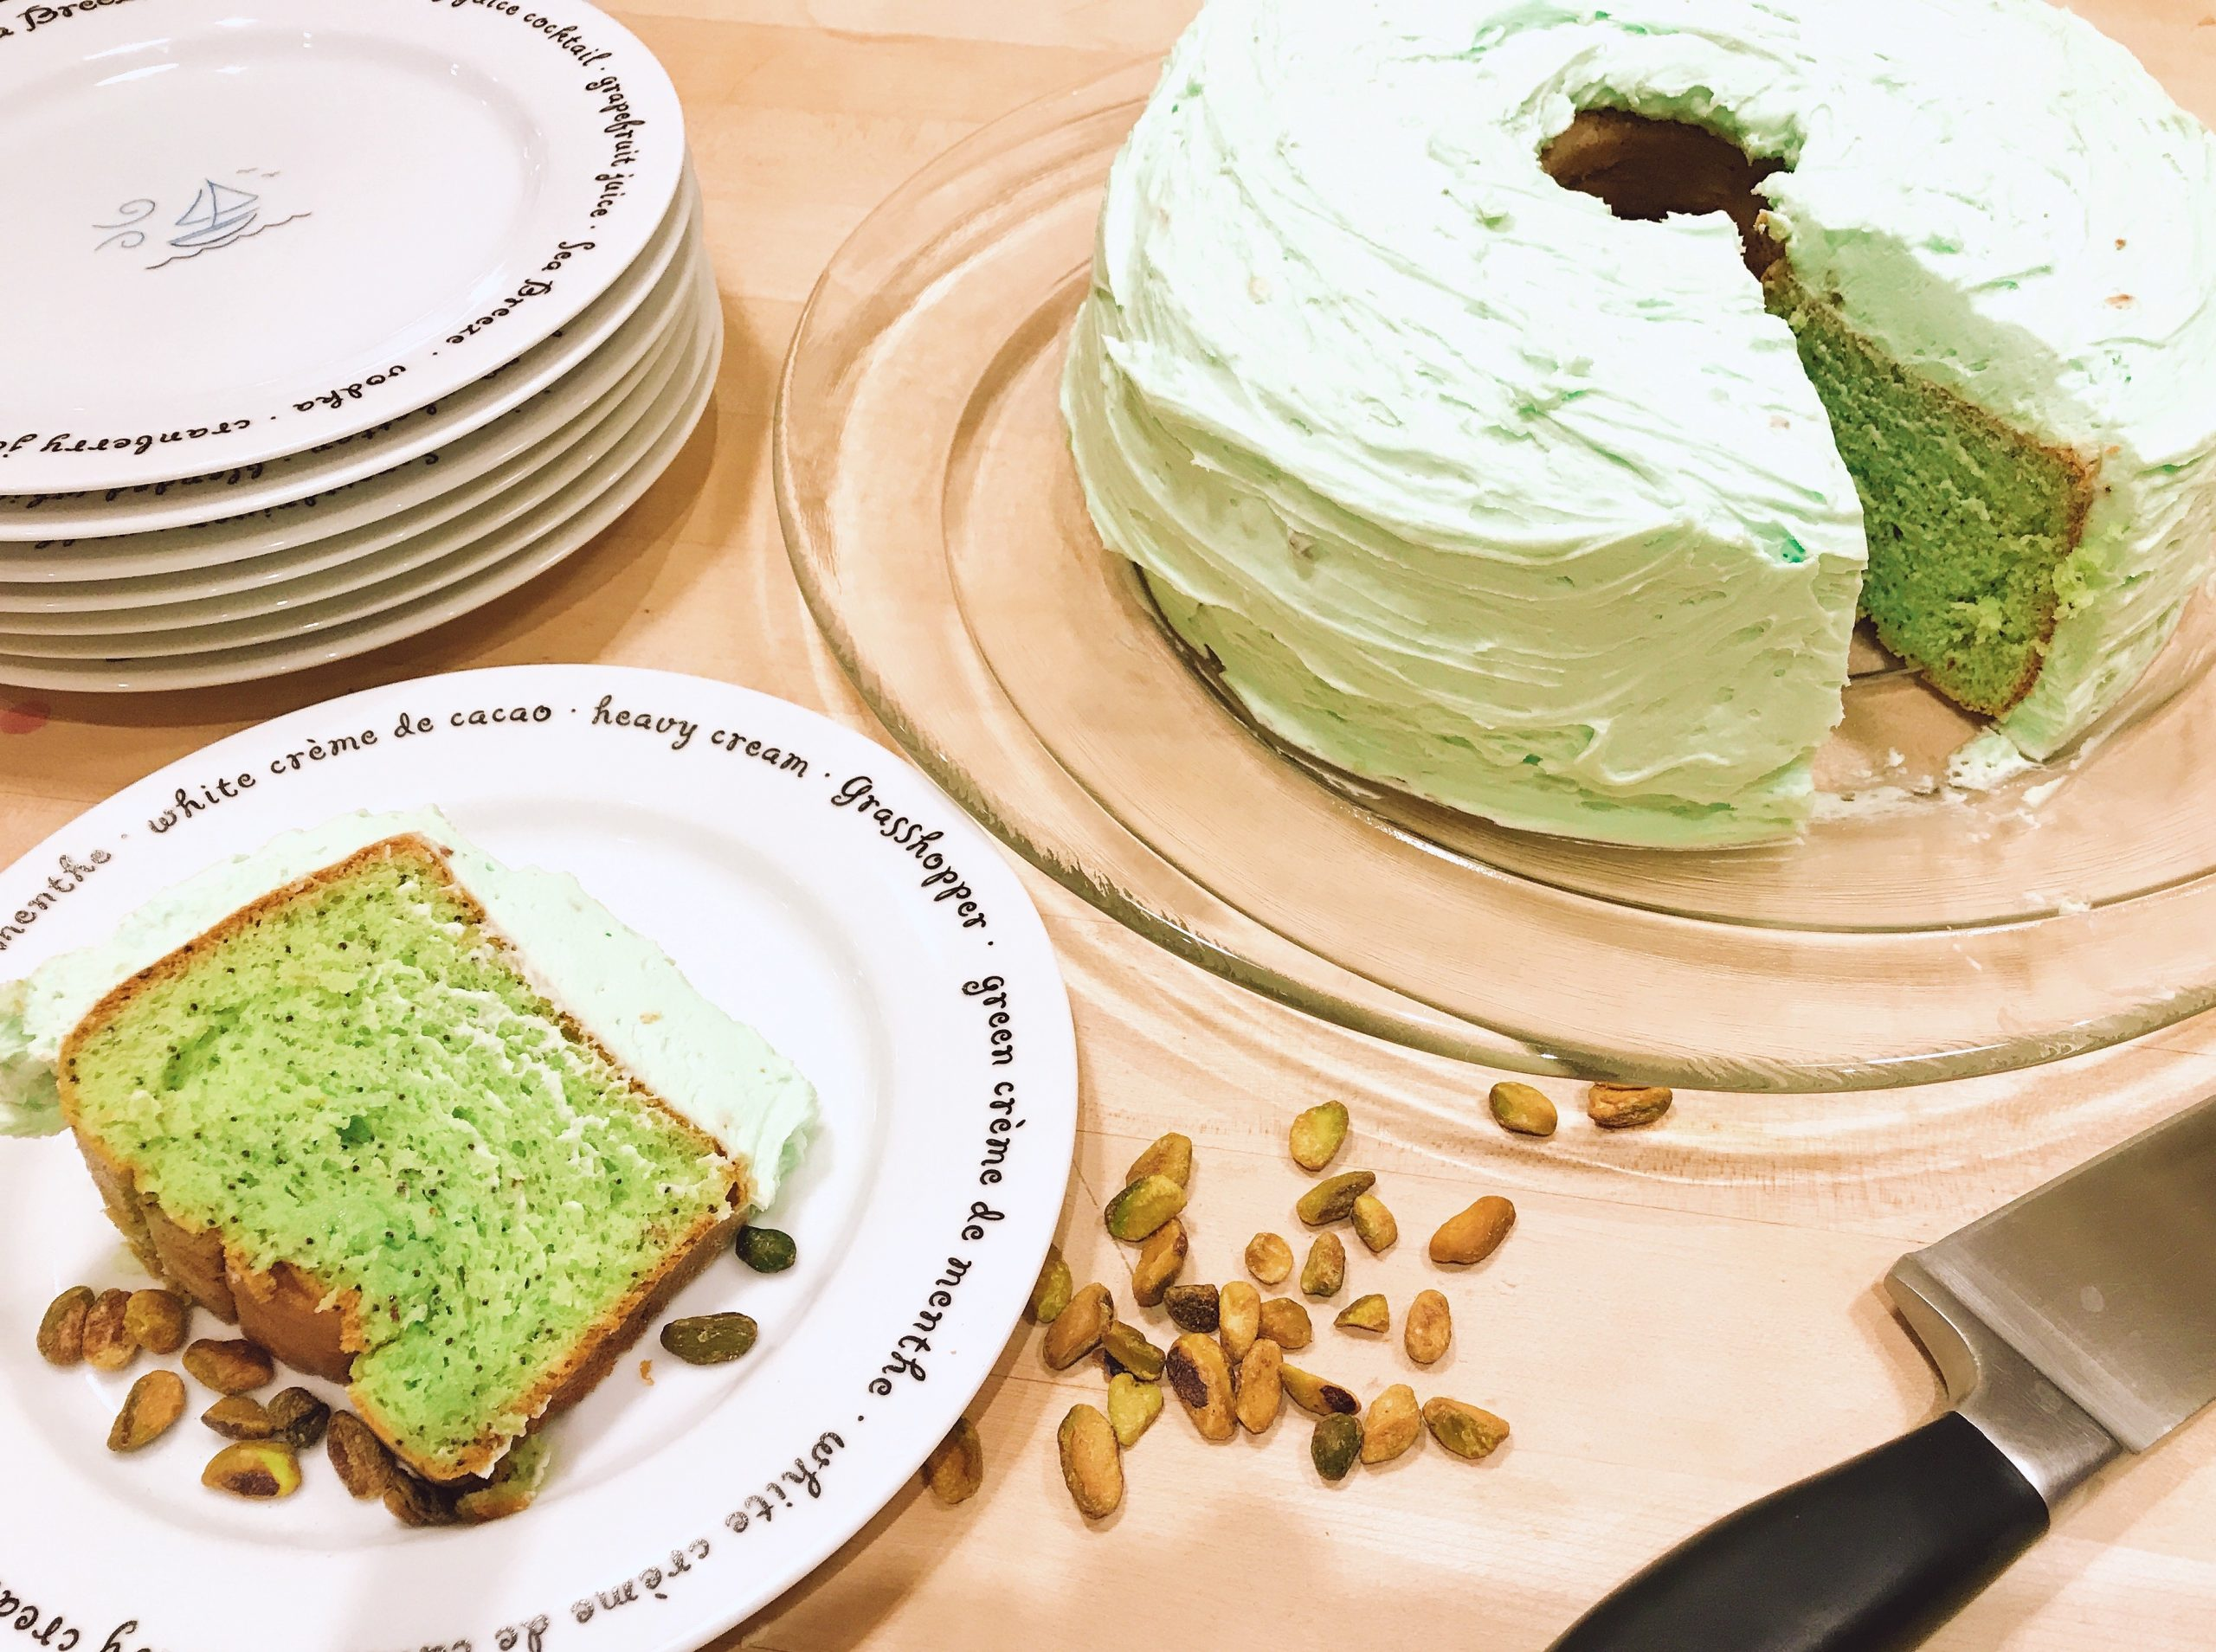 Pistachio Pudding Cake with Green Whipped Cream Frosting and salted pistachios